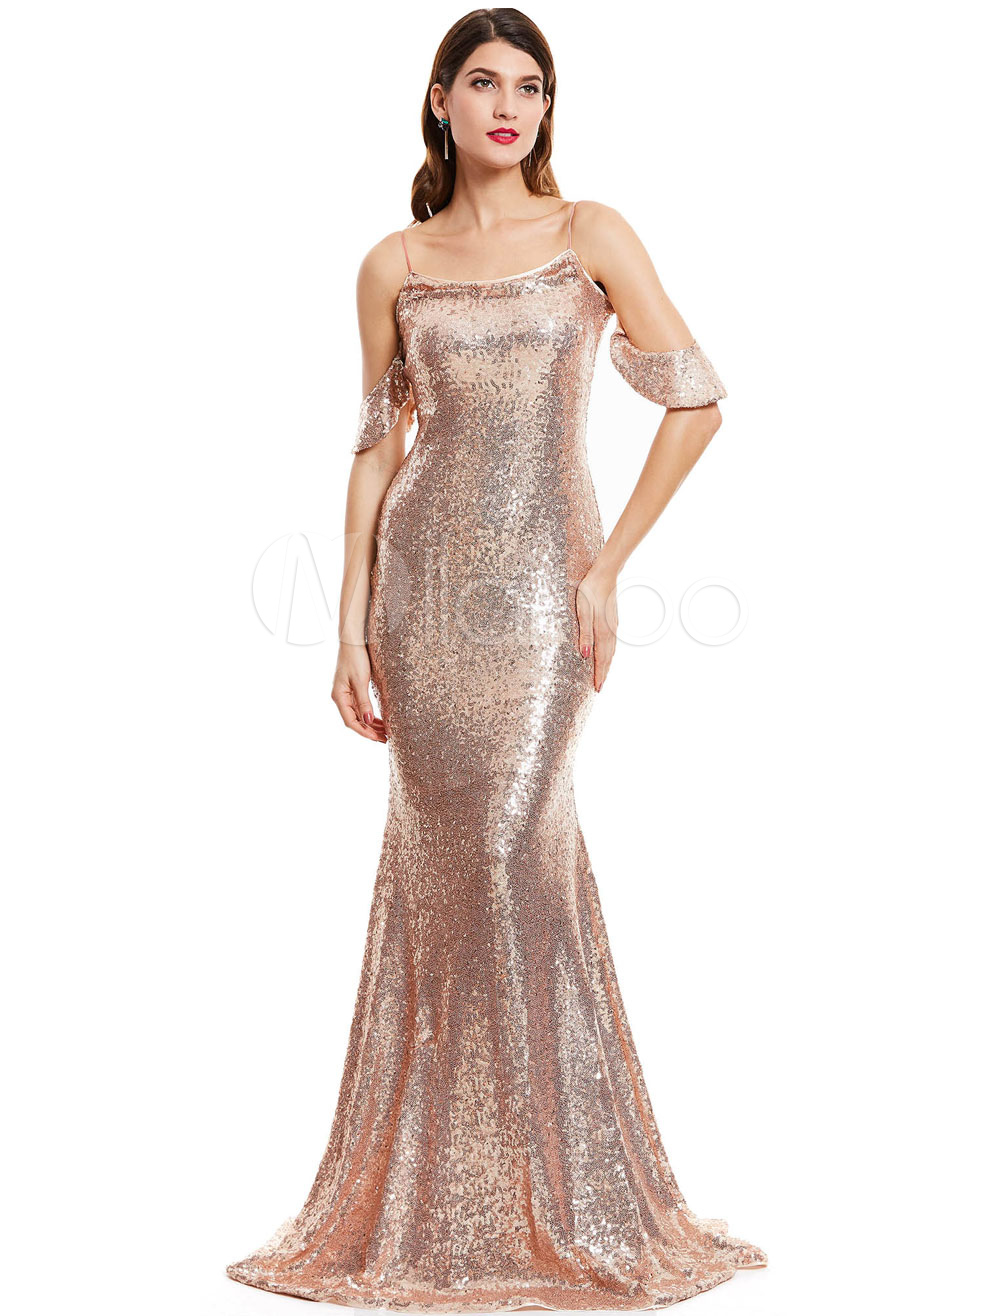 Sequin Prom Dresses Mermaid  Formal Evening Dress Off Shoulder Straps Evening Gown With Train